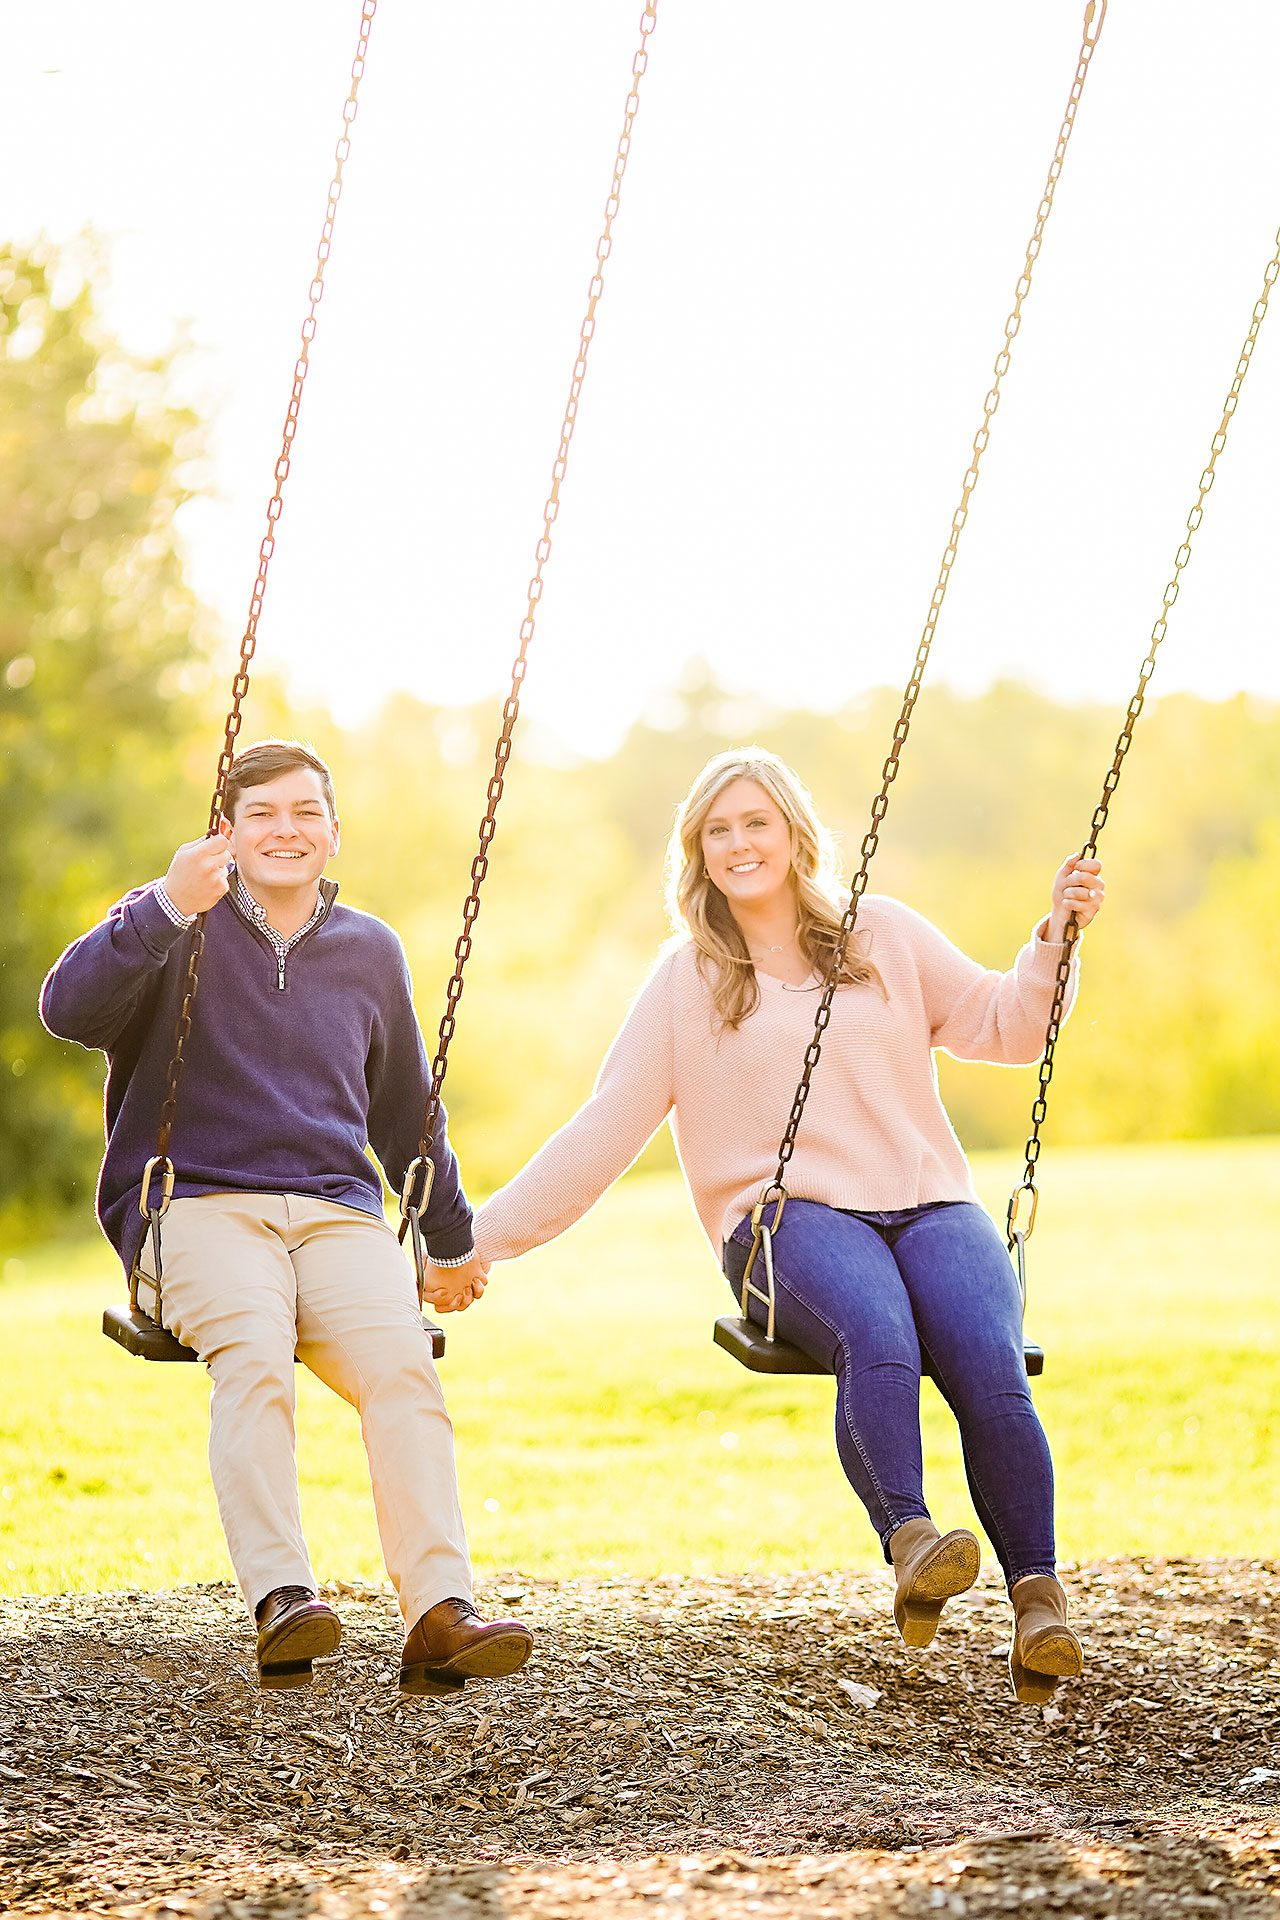 Taylor Case Newfields Engagement Session 130